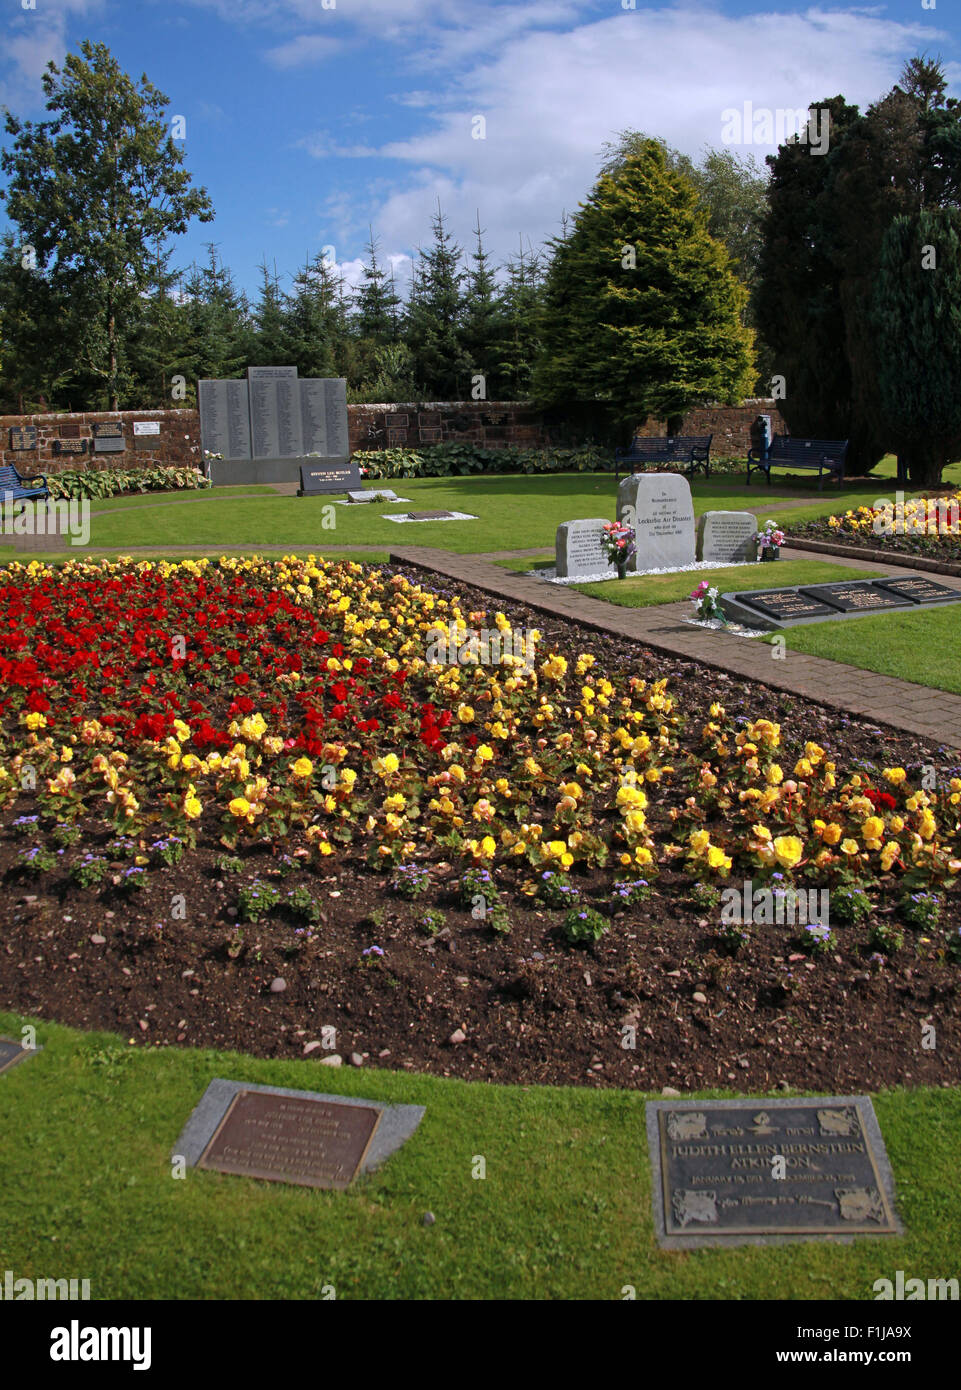 side View,summer in Scotland,Lodge,Visitors,Centre,DLVC,Trust,Lockerbie,Memorial,Remembrance,Scotland,Victims,Pan,Am,PanAm,flight,103,bomb,bombing,terrorist,December,1988,attack,crash,dead,site,21/12/1988,270,victims,Scottish,Town,conspiracy,blast,Tundergarth,Room,garden,of,Dryfesdale,C,New York,GoTonySmith,Lodge,Visitors,Centre,DLVC,Trust,Lockerbie,Memorial,Scotland,Victims,Pan,Am,PanAm,flight,103,bomb,bombing,terrorist,December,1988,attack,crash,dead,site,21/12/1988,270,victims,Scottish,Town,conspiracy,blast,Tundergarth,Room,garden,of,Dryfesdale,Cemetery,news,Cultural,understanding,remembering,innocent,transatlantic,Frankfurt,Detroit,Libyan,Libya,Colonel Muammar Gaddafi,civil,case,compensation,terrorism,PA103,30,30years,years,Syracuse,University,SU,family,collections,Story,Archive,Archives,40,35,Timeline,saga,disaster,air,Scholars,program,programs,remembrance,Clipper Maid of the Seas,N739PA,Boeing,727,plane,aircraft,Scotland,UK,United Kingdom,GB,Great Britain,resting,place,Buy Pictures of,Buy Images Of,New York,al megrahi,30 Years